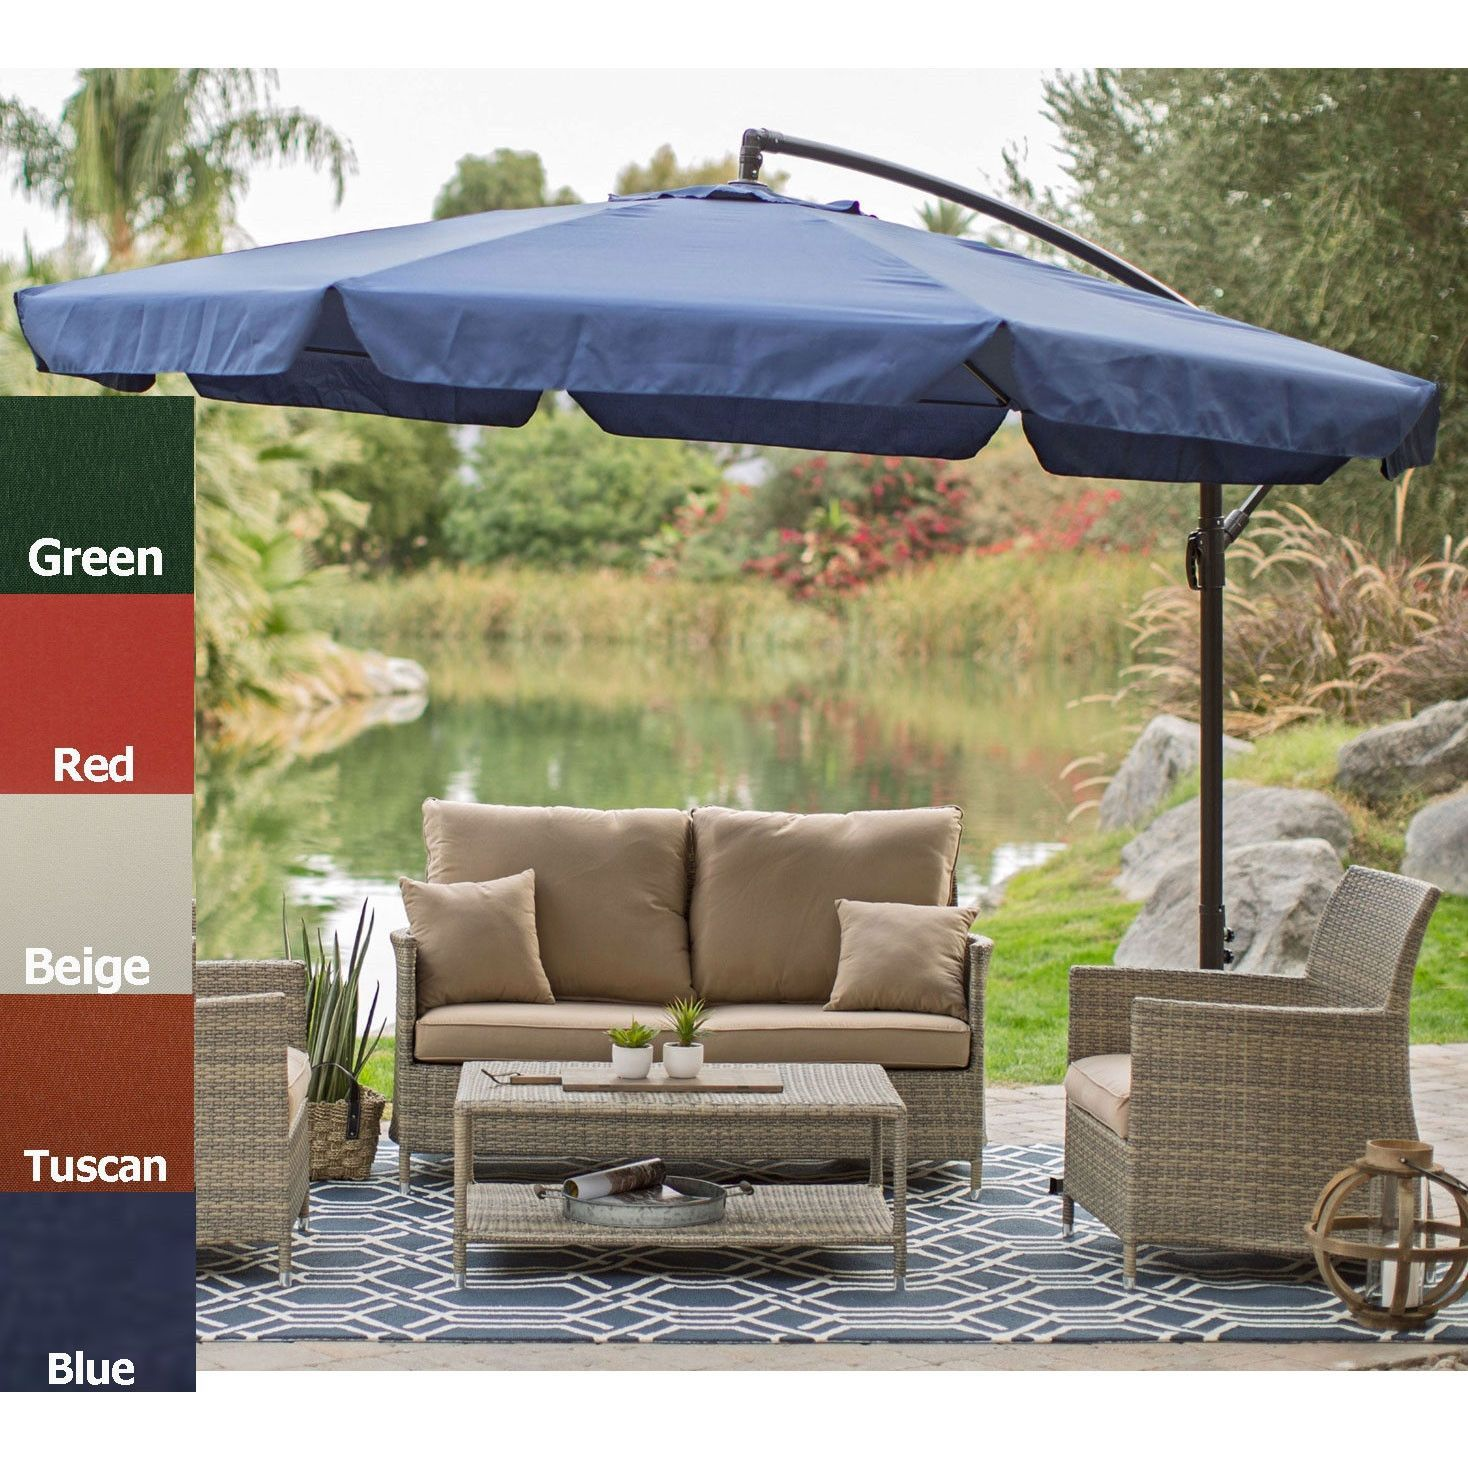 Tuscan Orange Red 11 Ft Offset Patio Umbrella Gazebo With Canopy Base And Detachable Mosquito Netting With Images Offset Patio Umbrella Offset Umbrella Patio Umbrella